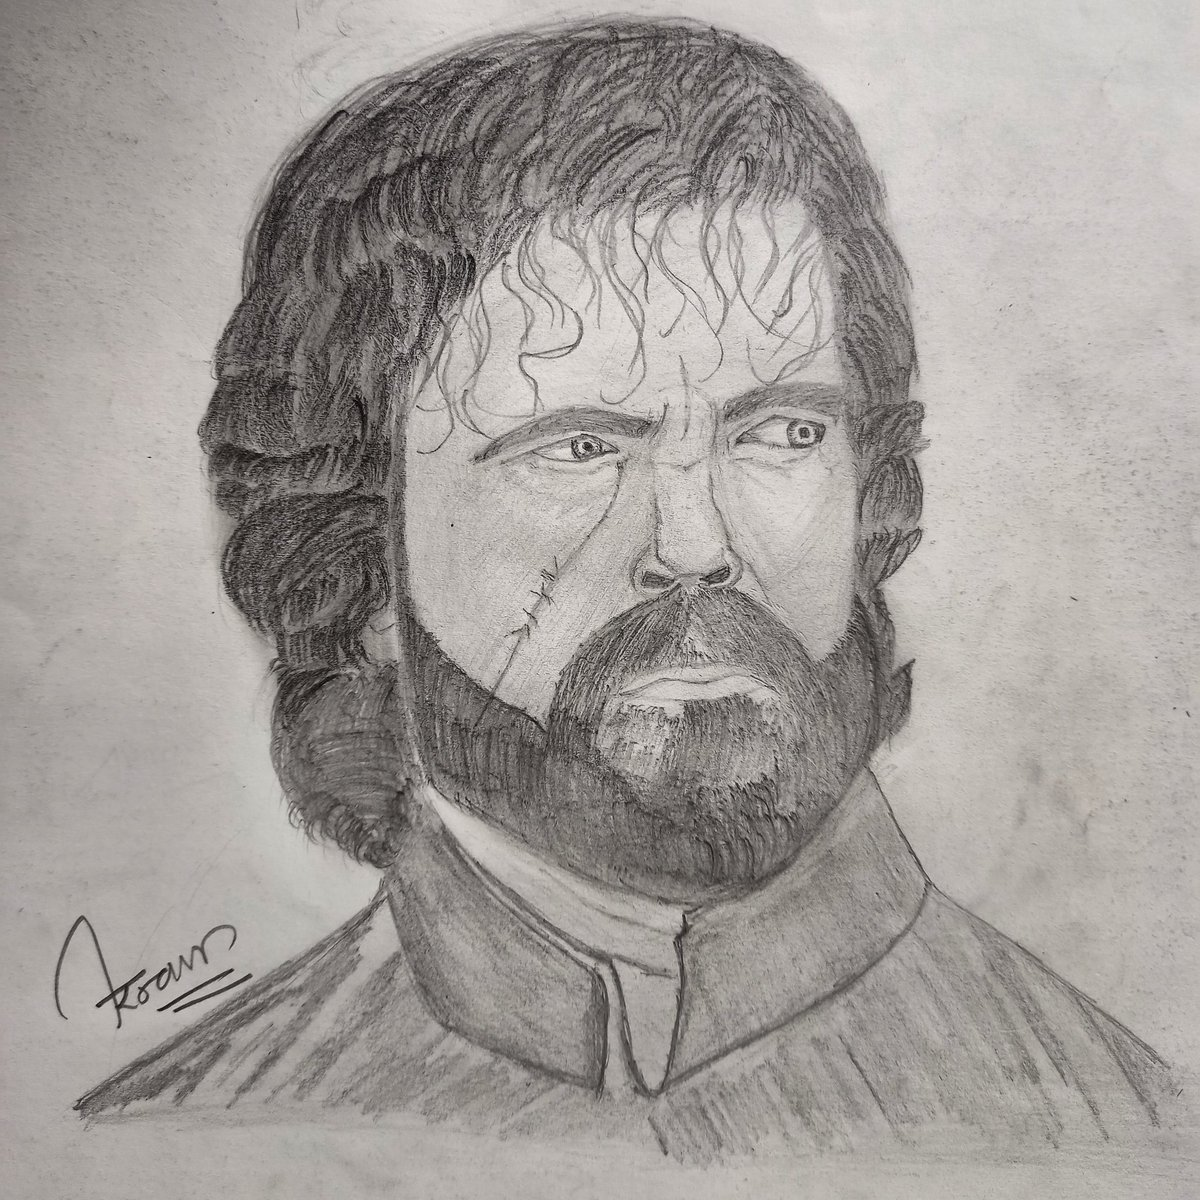 Pencil sketch @Peter_Dinklage as #tyrionlannister from @GameOfThrones https://t.co/tK7KJbWhdb